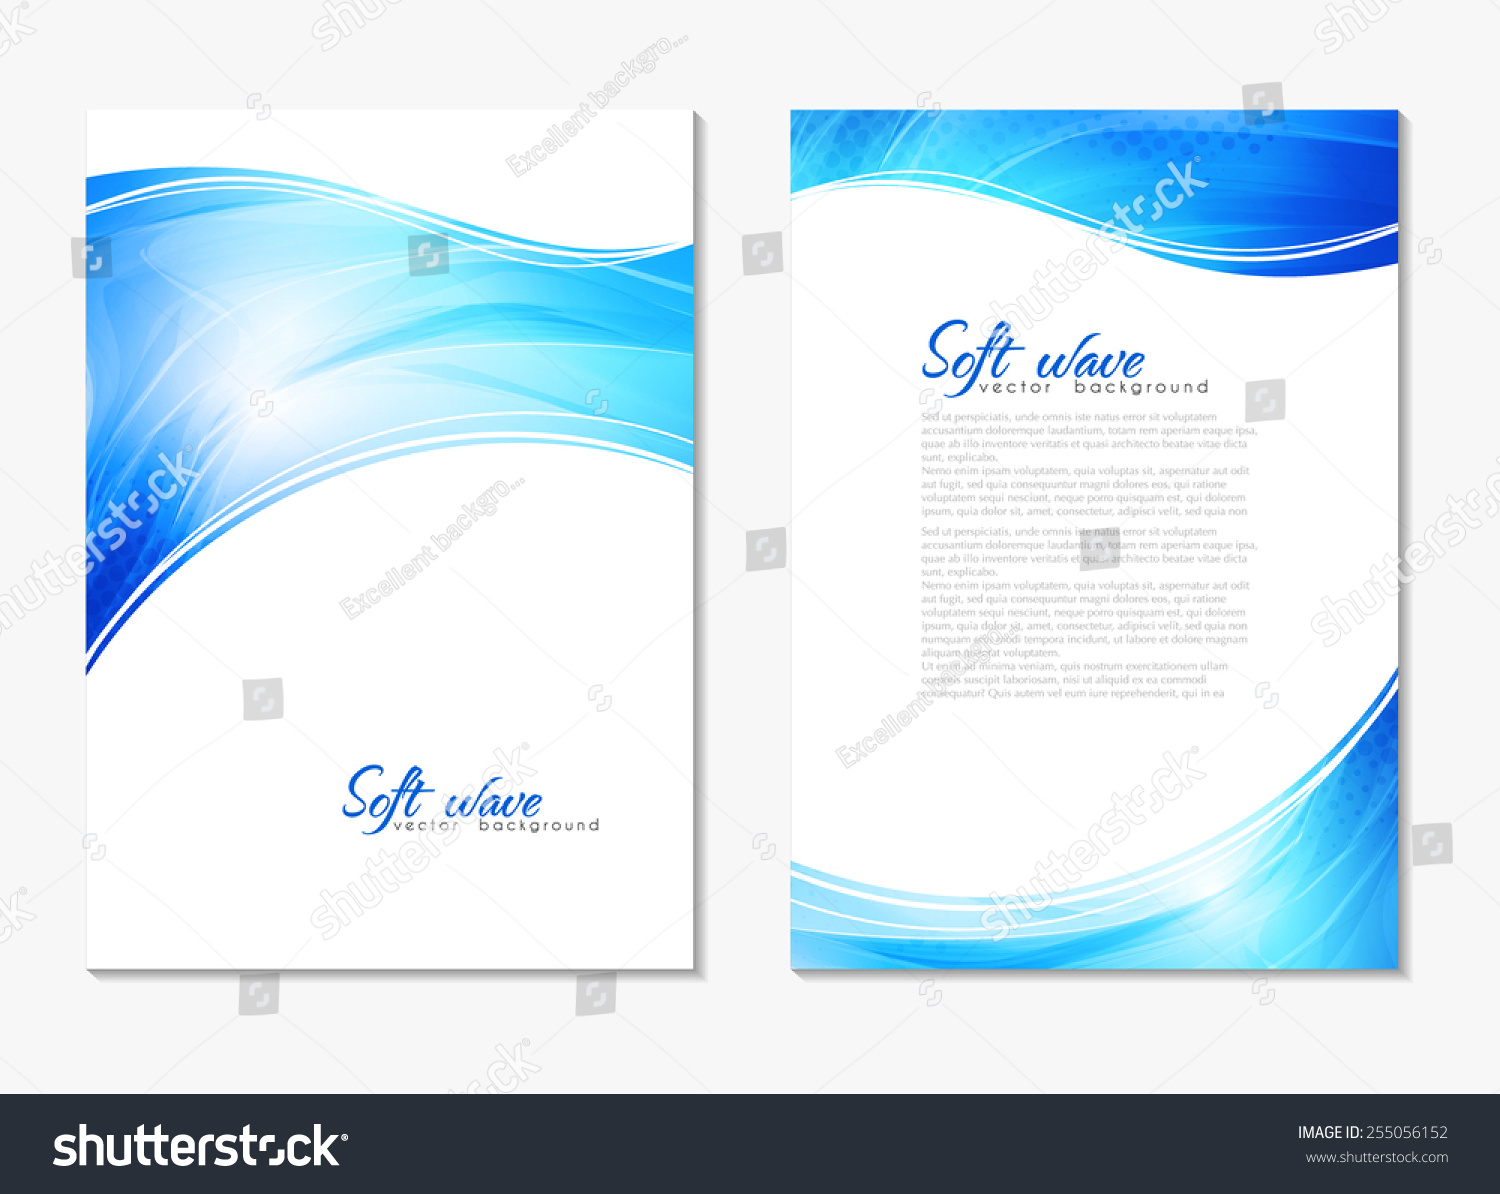 abstract modern blue color backgrounds with lighting effect back and front flyer cover design. Black Bedroom Furniture Sets. Home Design Ideas